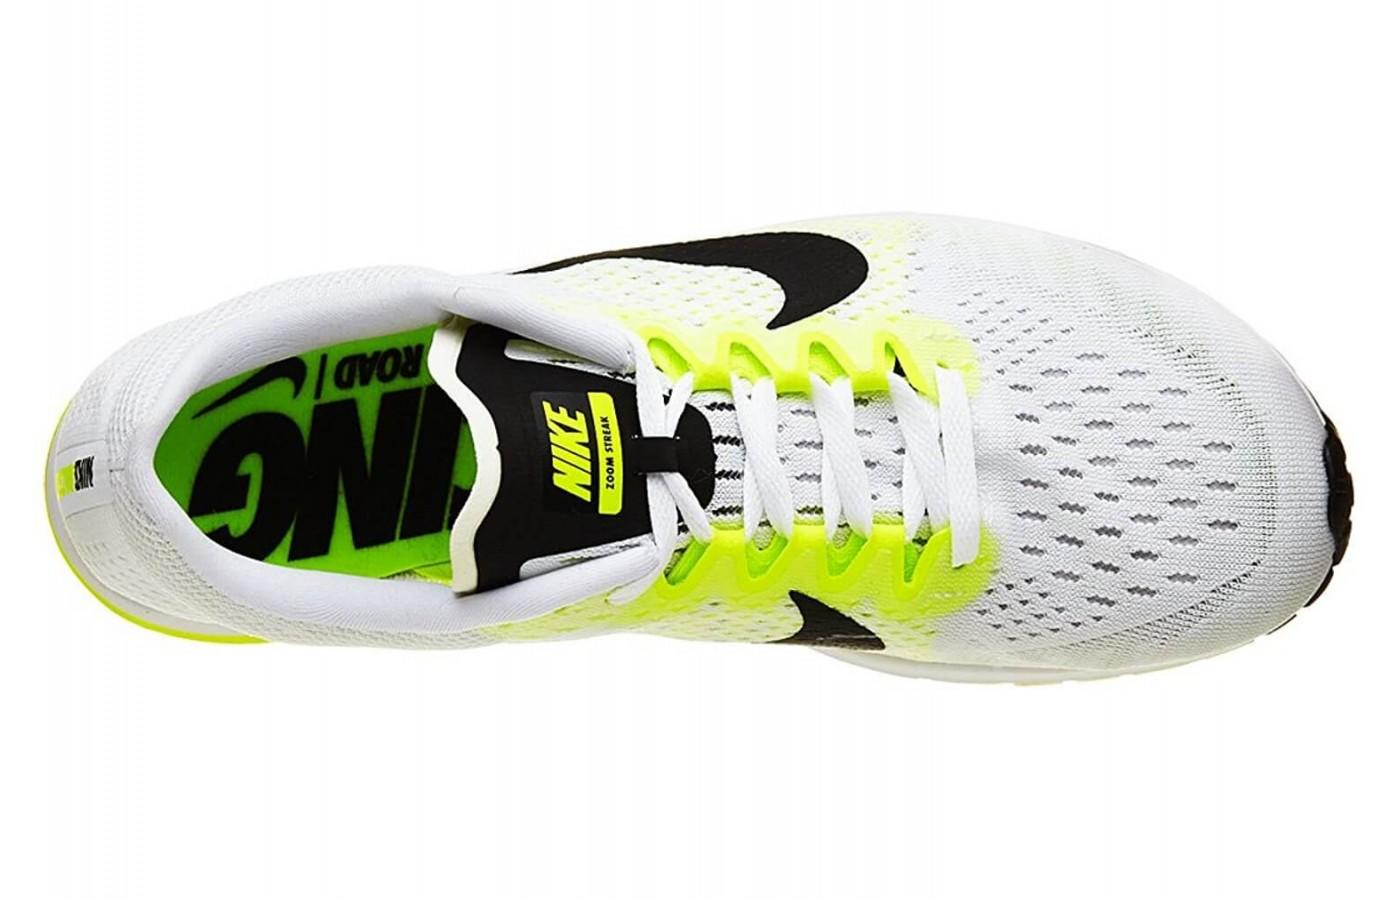 Nike Air Zoom Streak 6 features  Flymesh upper